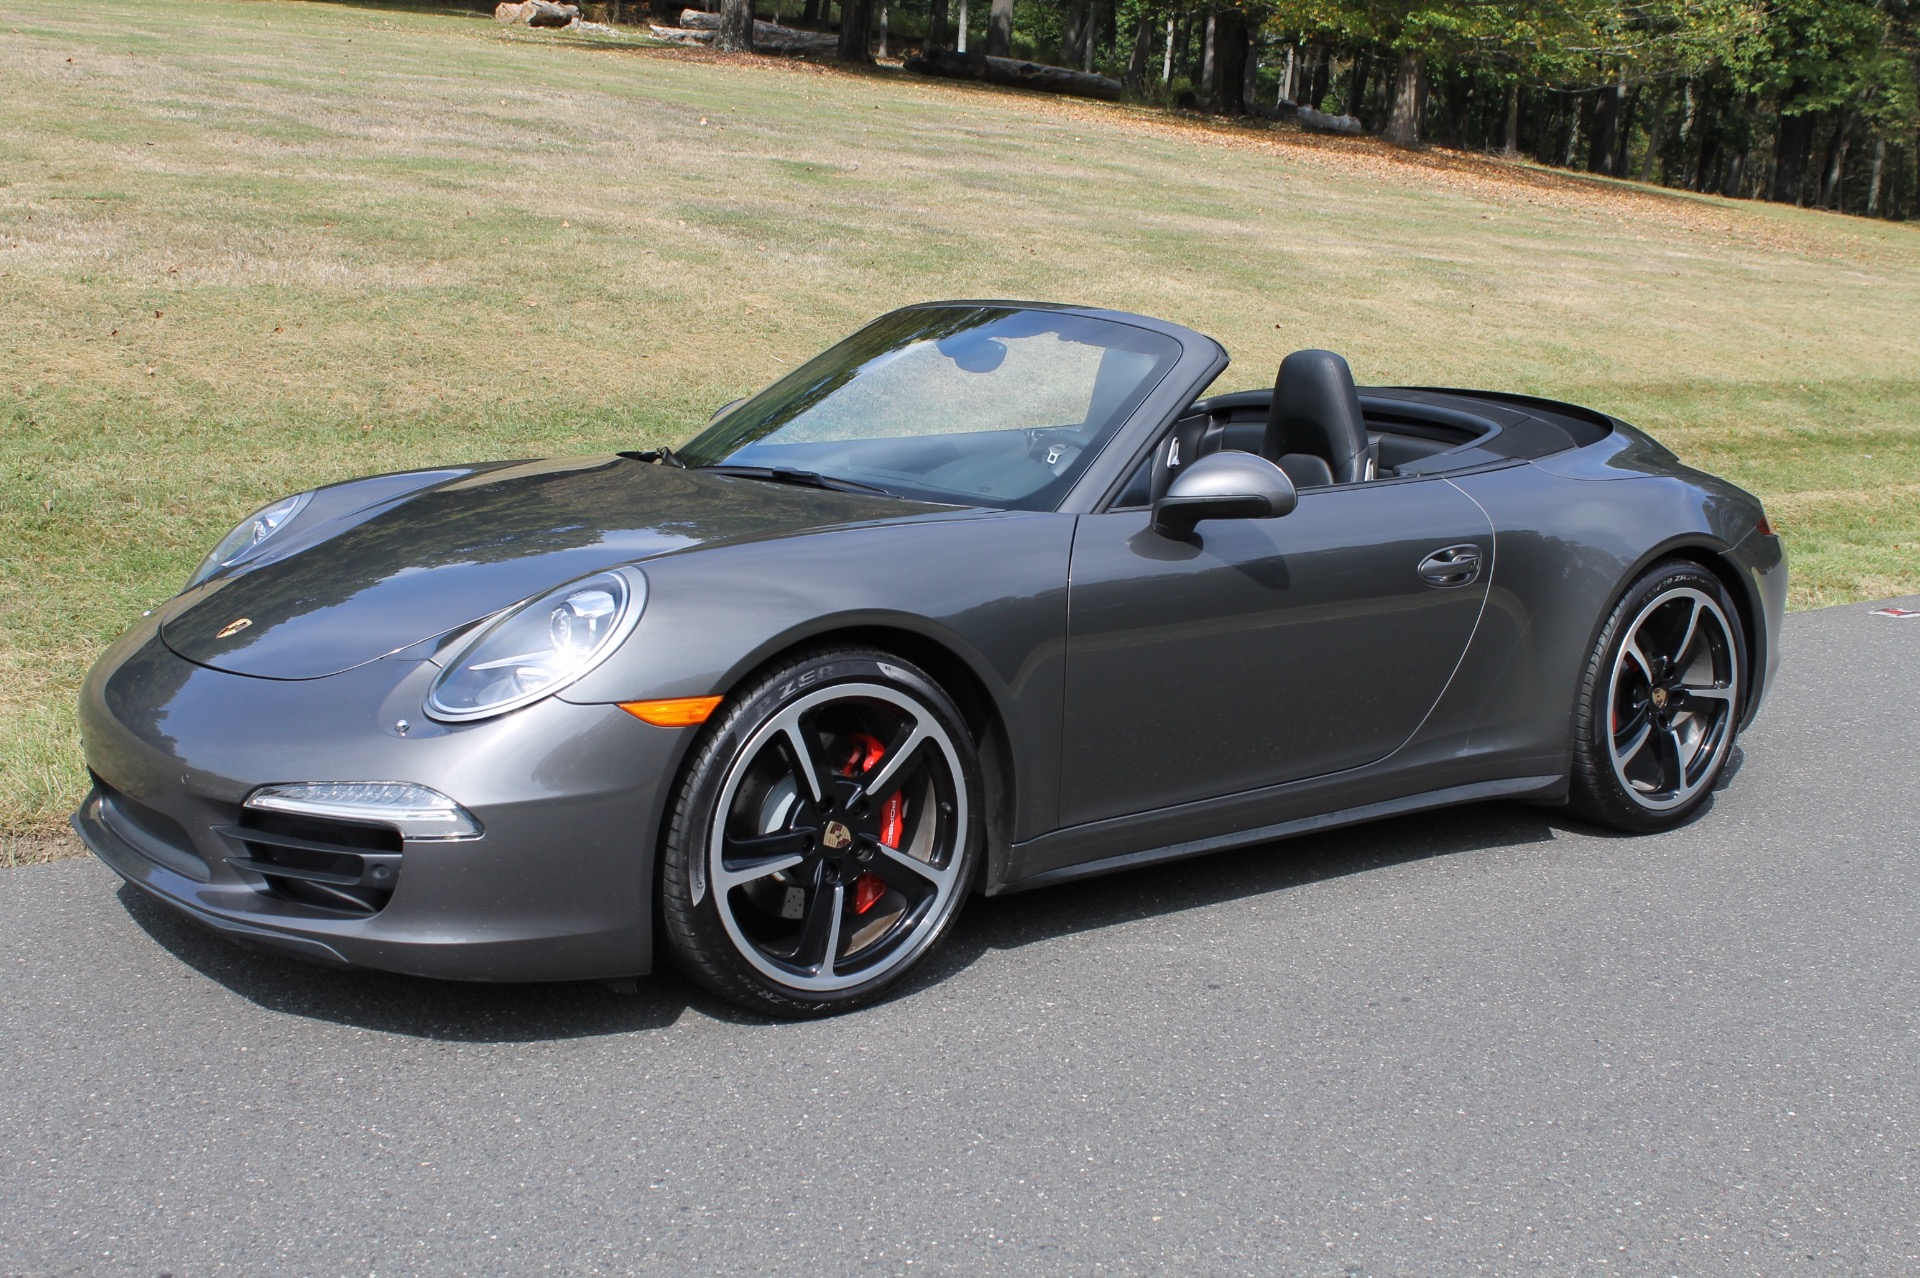 2014 porsche 911 carrera 4s pdk carrera 4s. Black Bedroom Furniture Sets. Home Design Ideas